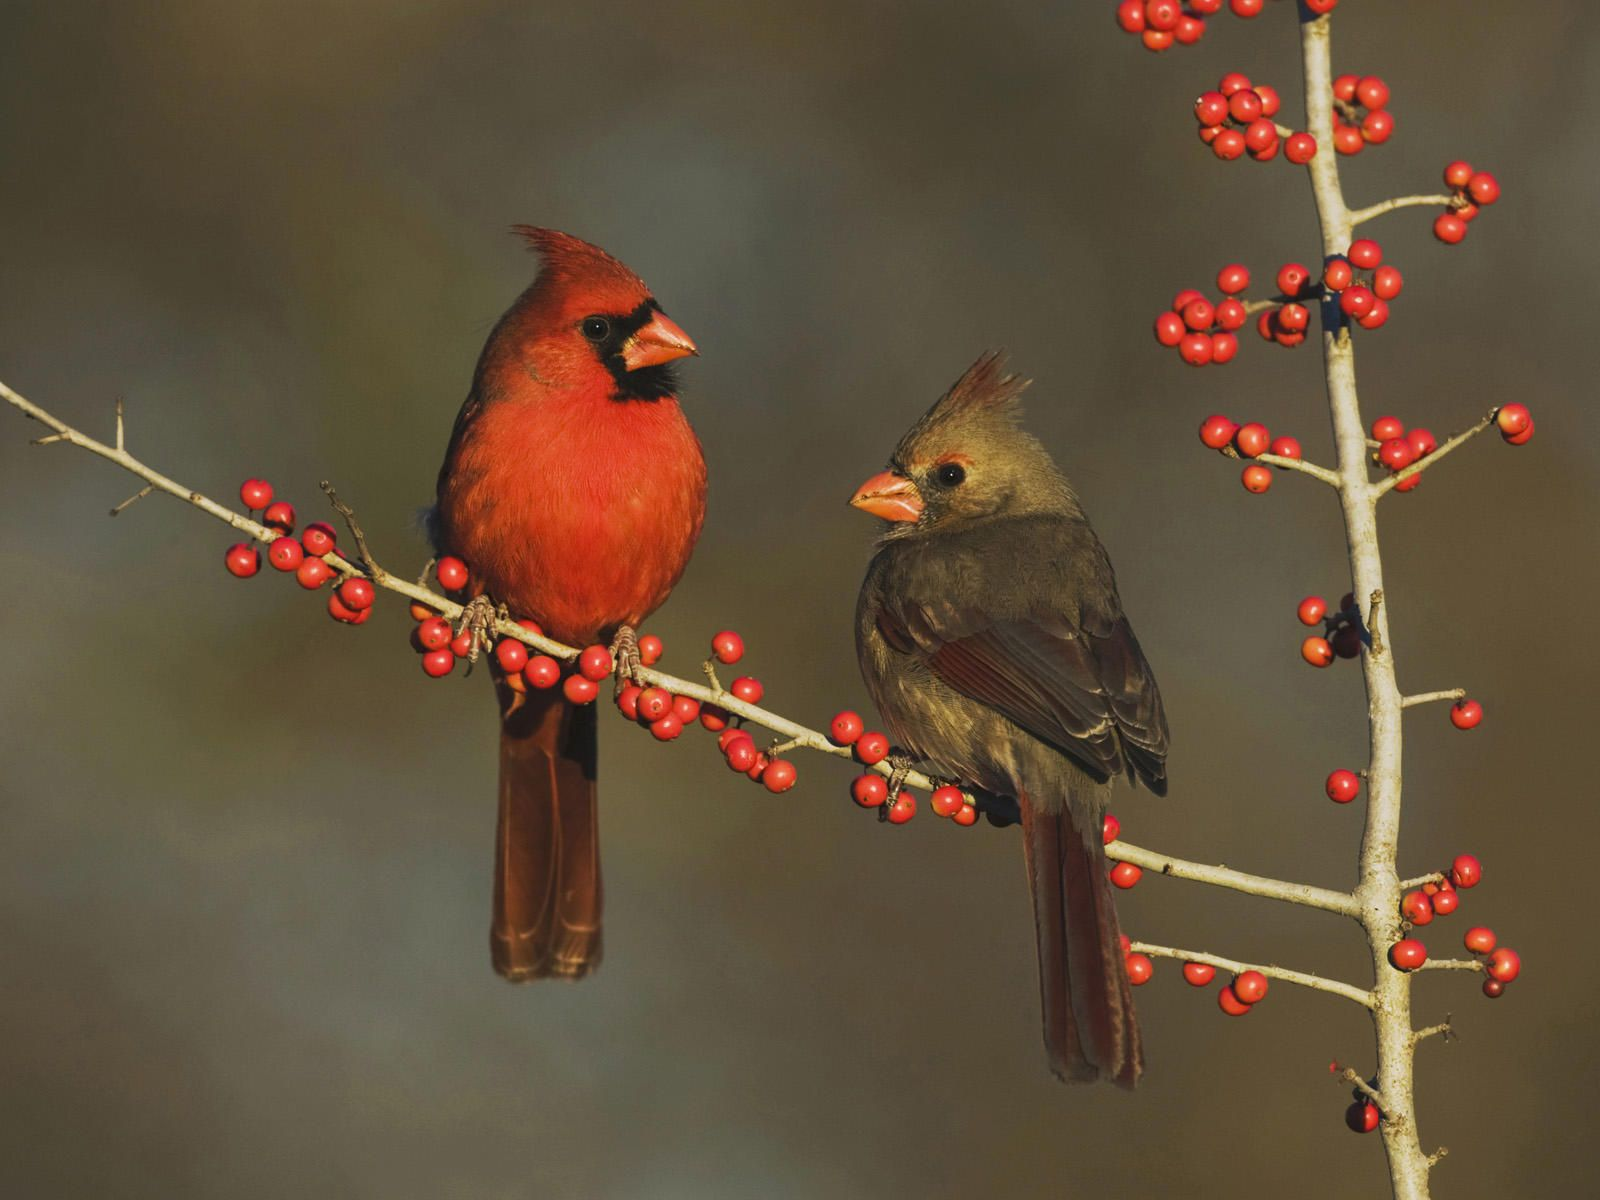 Male And Female Cardinal With Images Birds Cardinal Birds